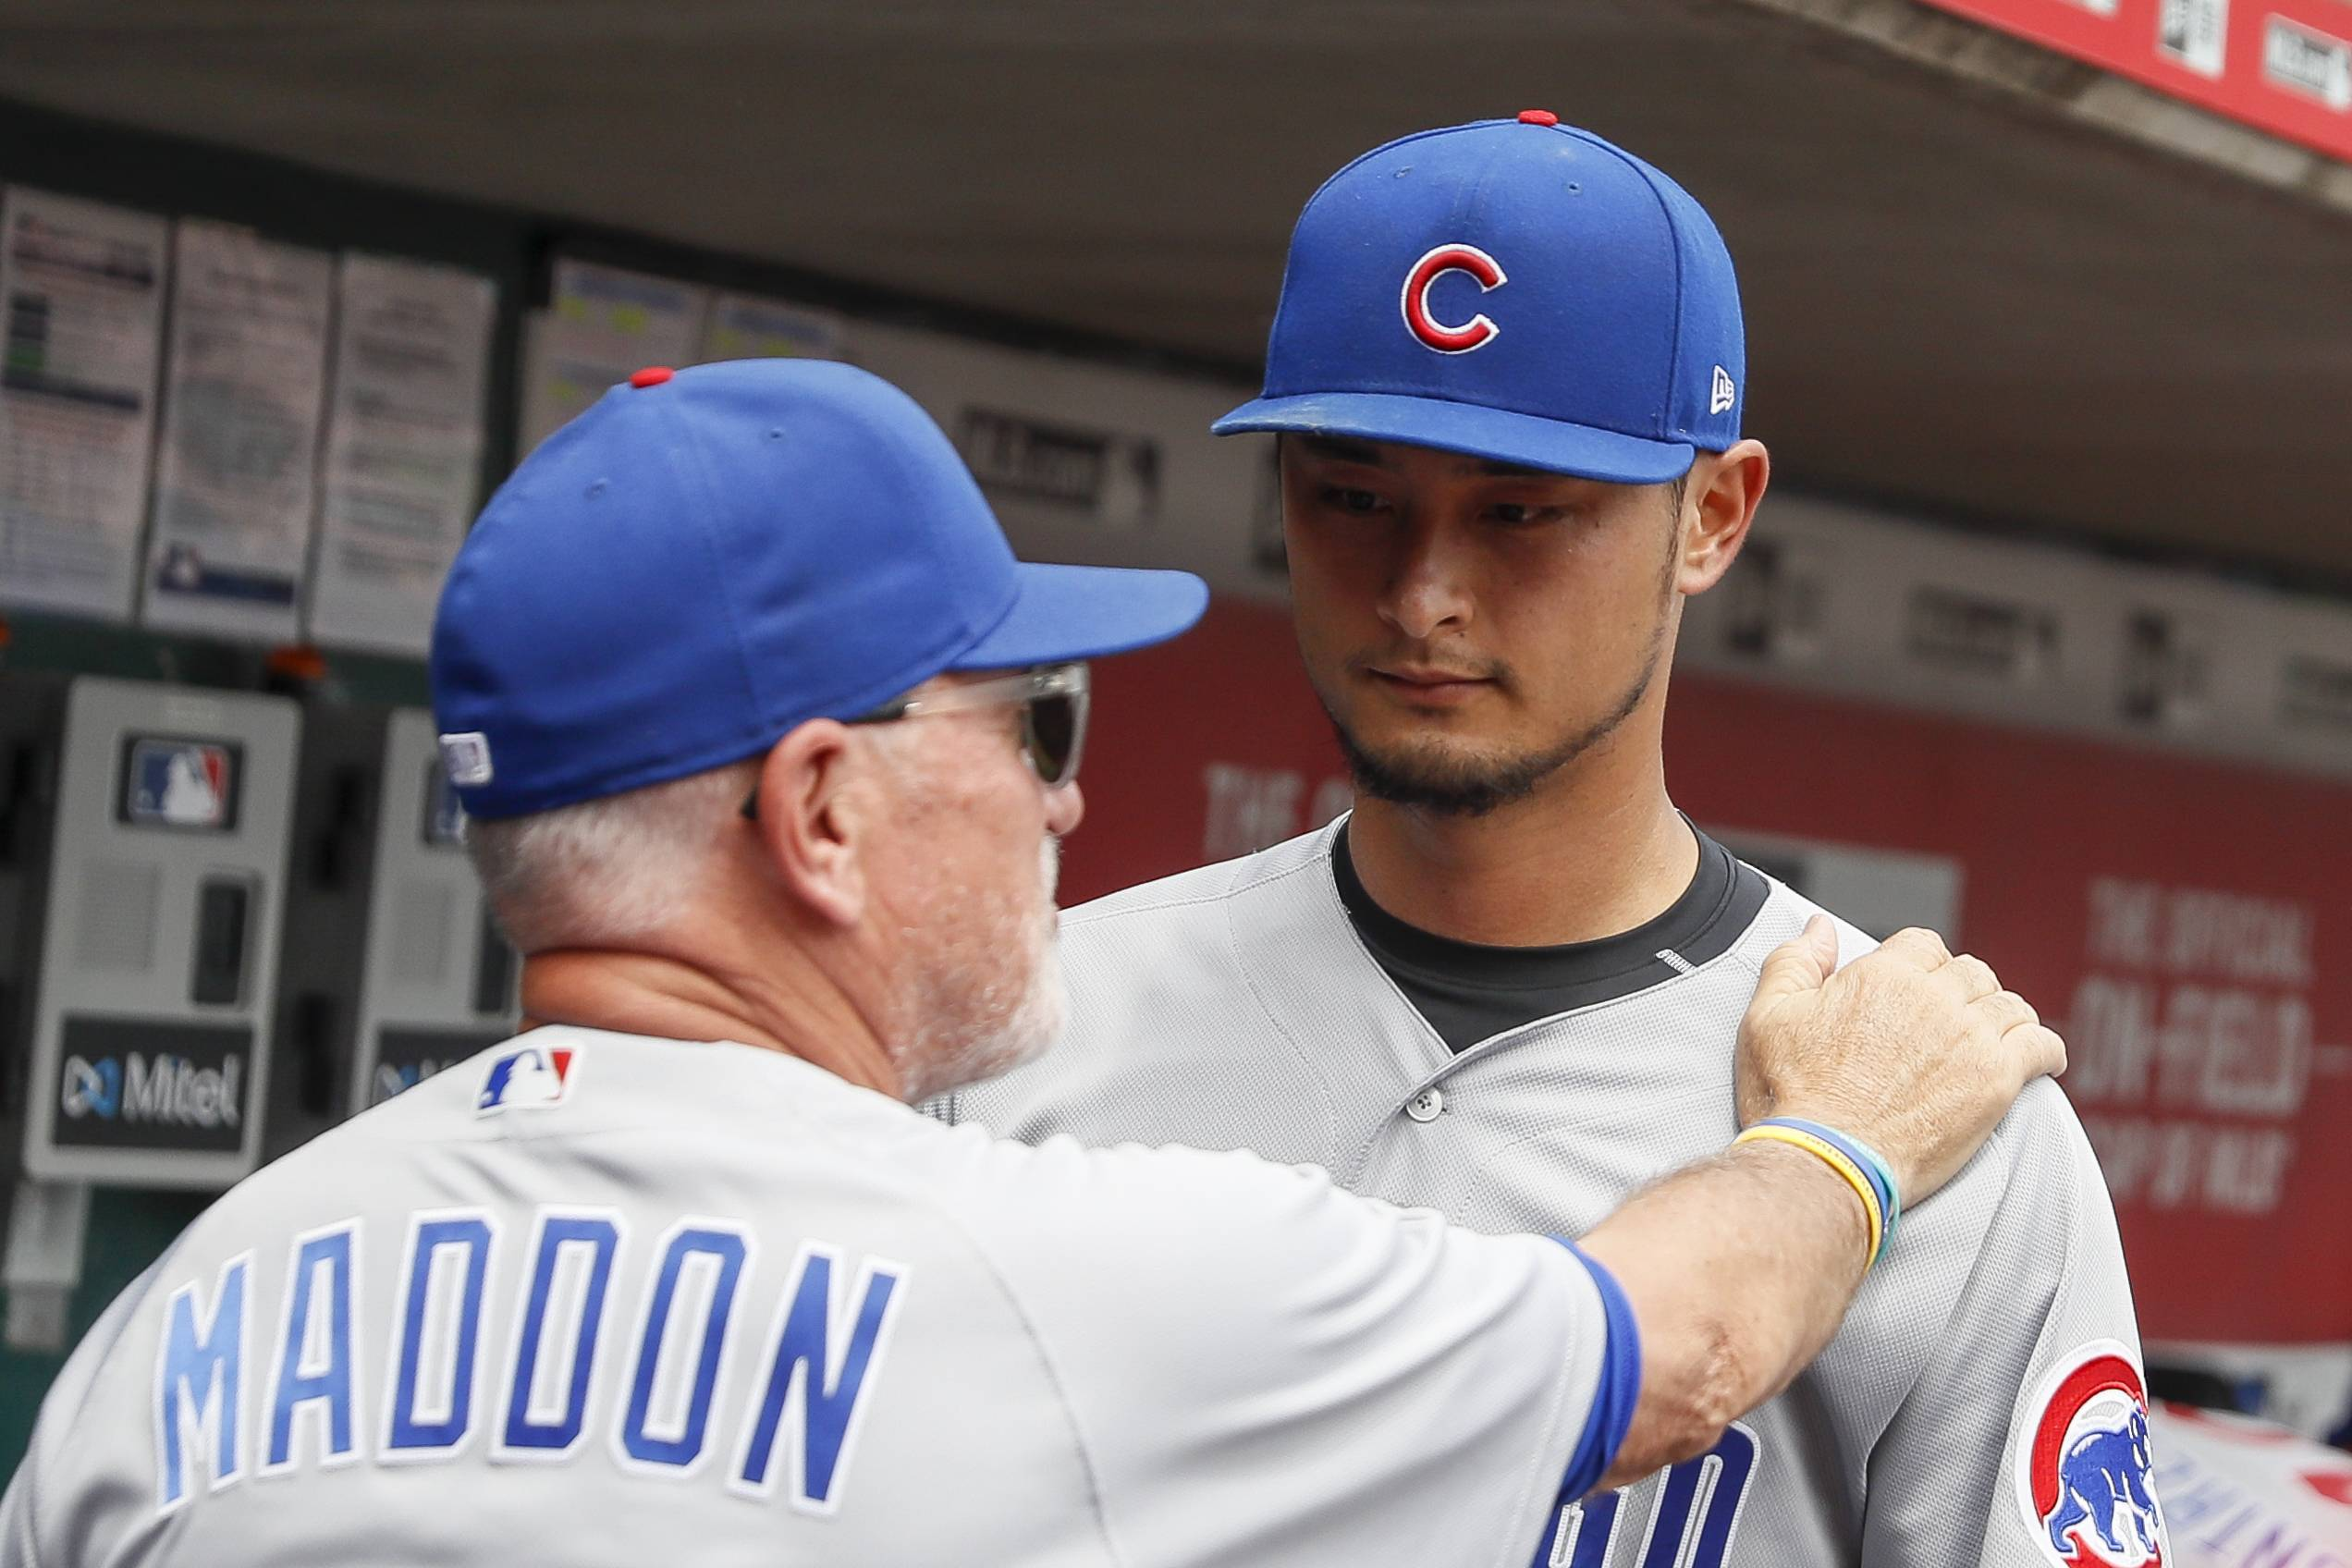 Chicago Cubs' Darvish all 'good' after bullpen session